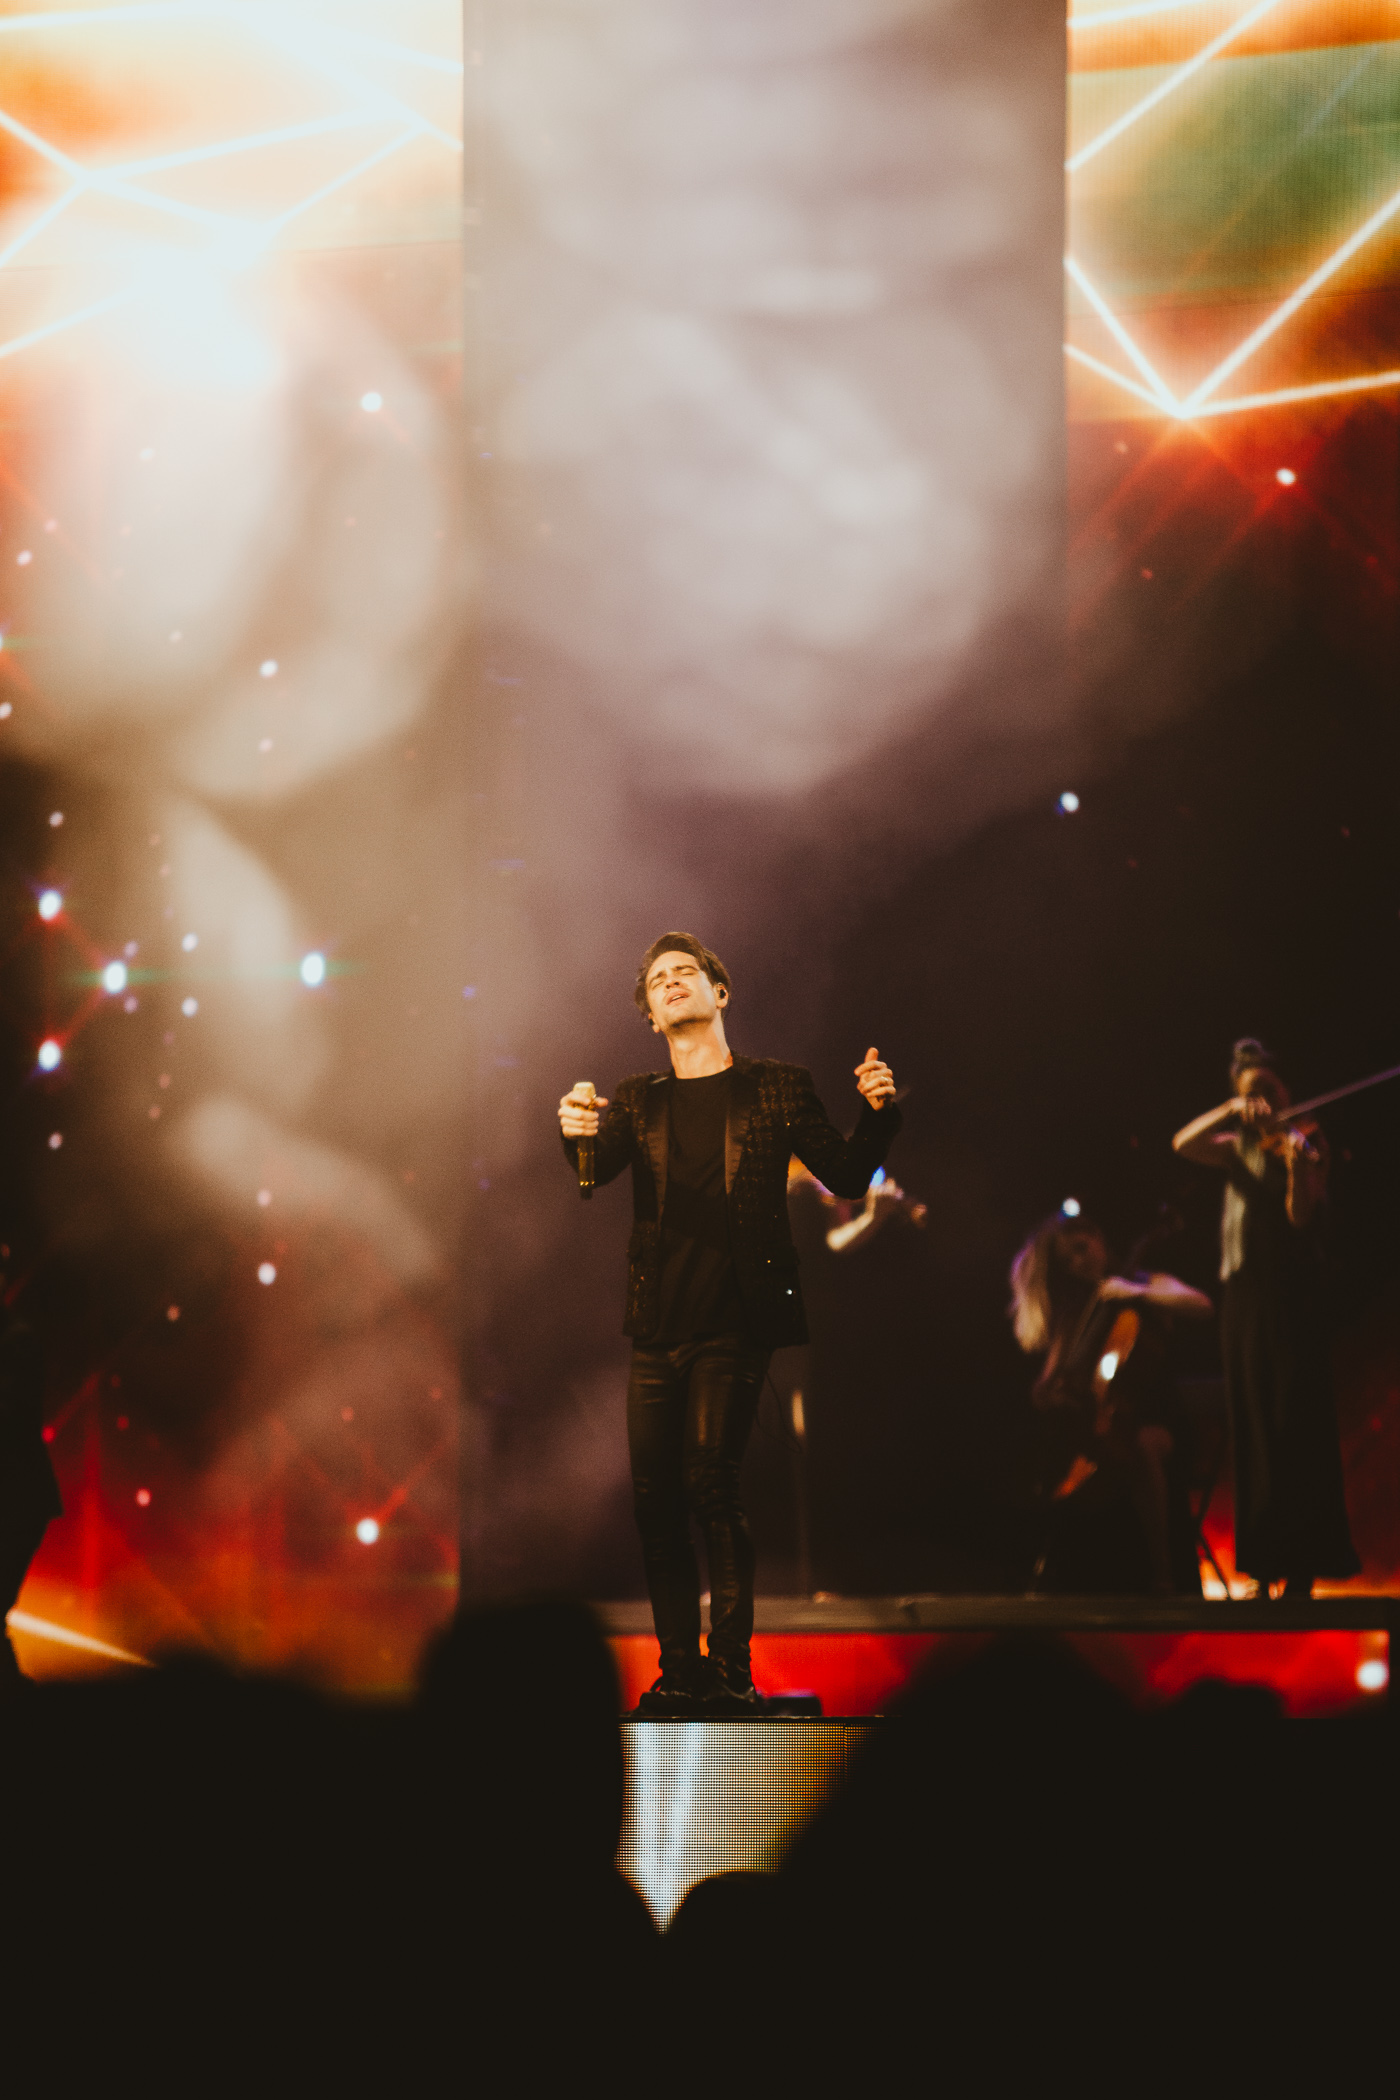 1_Panic!_At_The_Disco-Rogers_Arena-Timothy_Nguyen-20180811-14.jpg